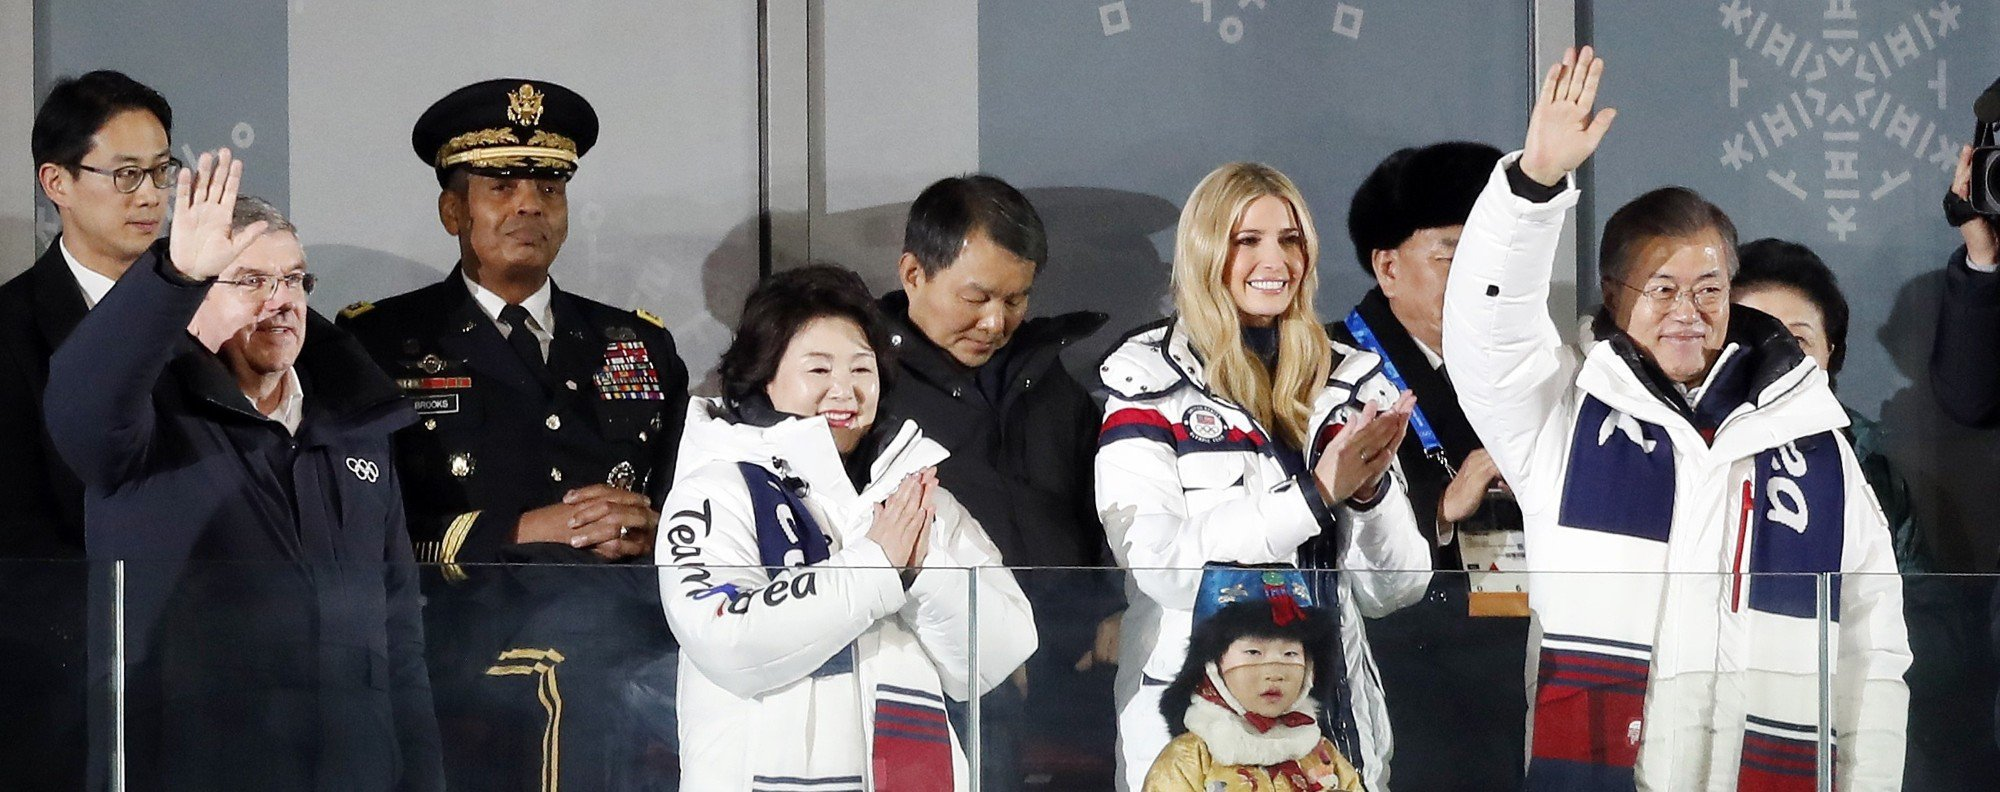 Moon Jae-in at the Olympics closing ceremony. Photo: Reuters